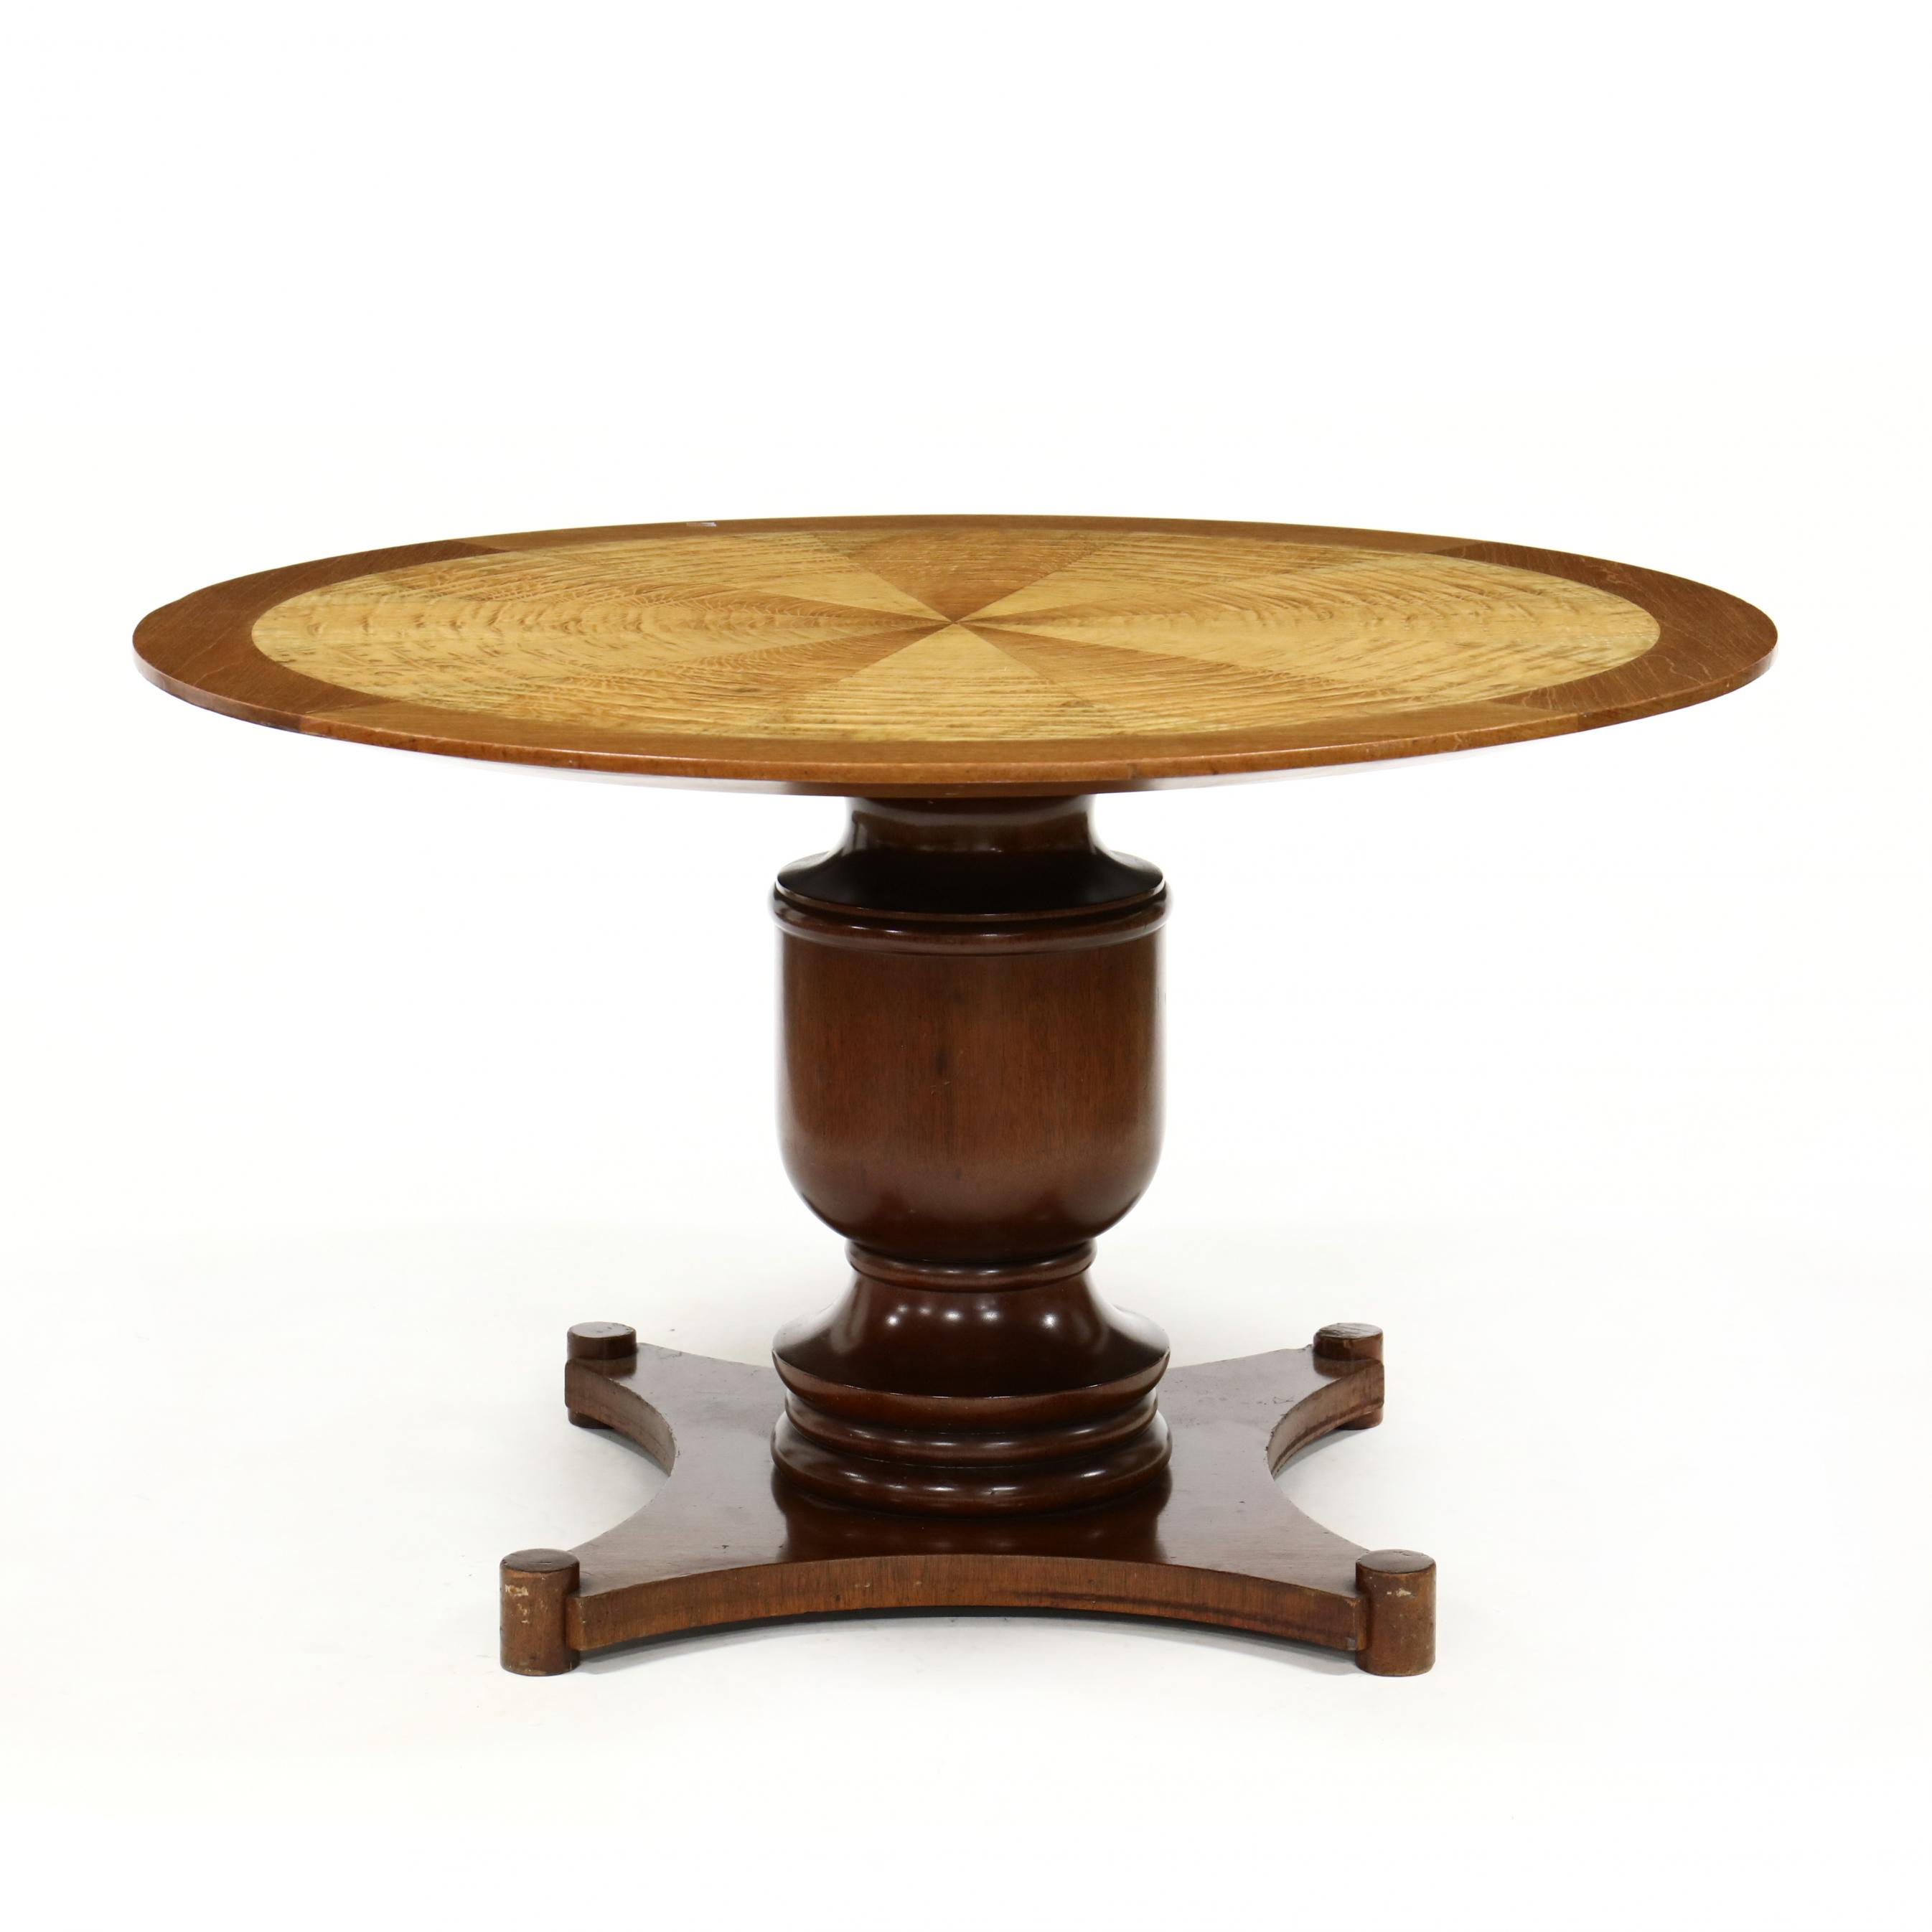 neoclassical-style-figured-wood-center-table